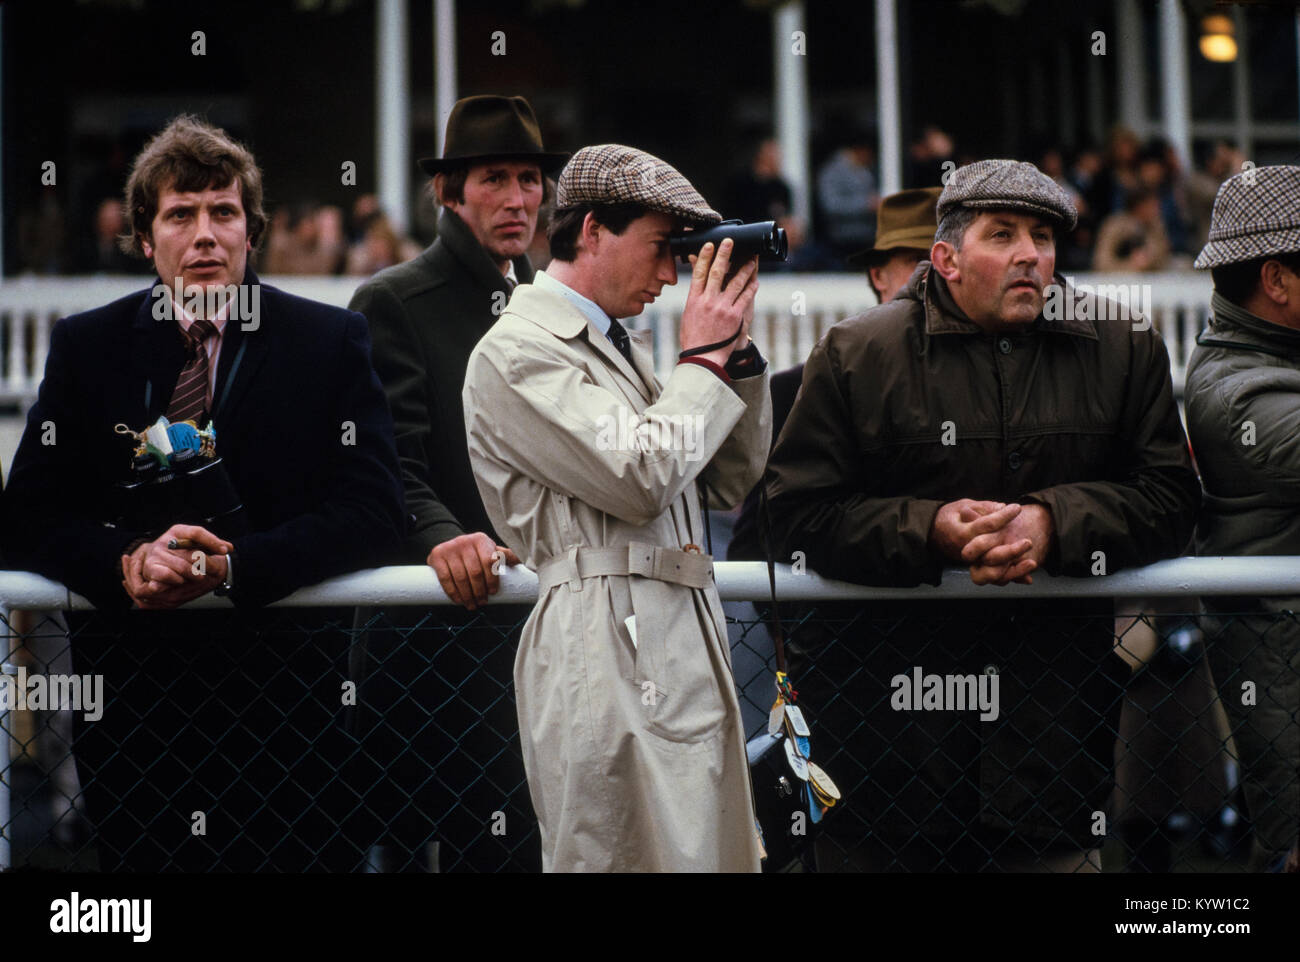 Grand National Horse Race at Aintree, Liverpool 1985. Scanned in 2018 Visitors at the Grand National Horse Race Stock Photo